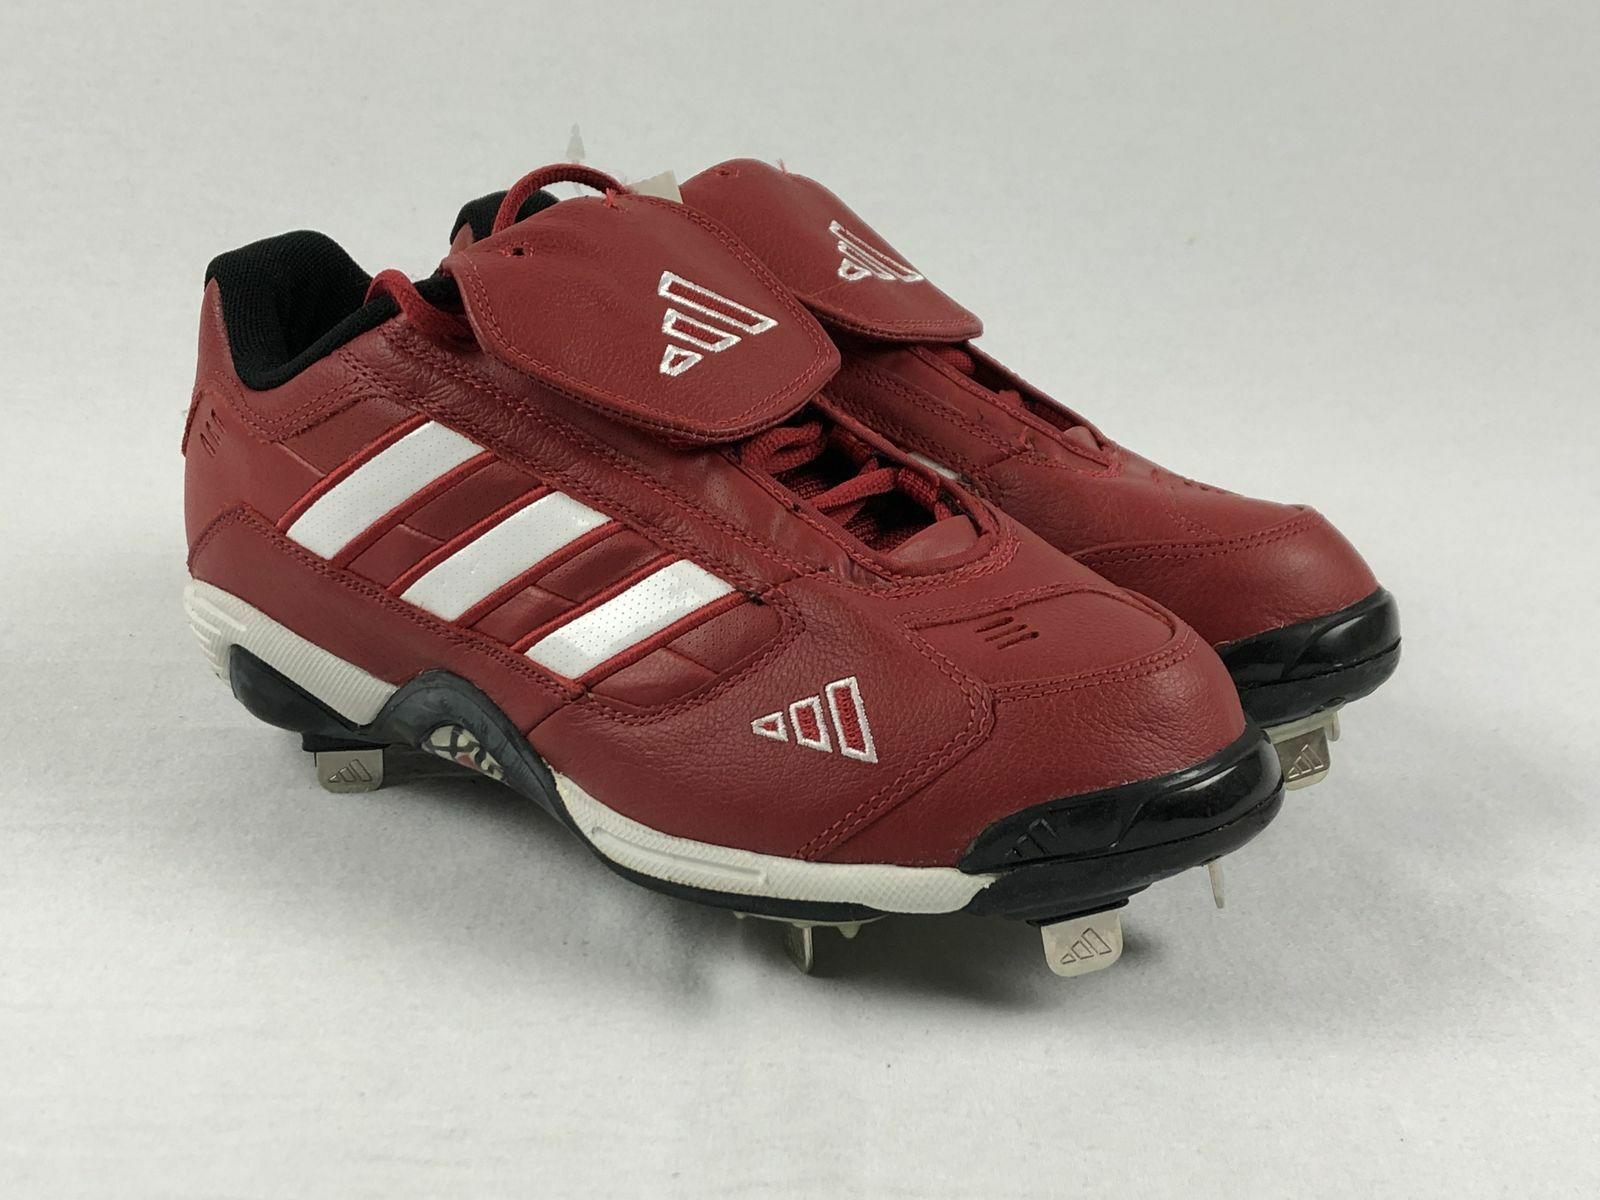 NEW adidas Excelsior Low - Red Cleats (Men's Multiple Sizes)